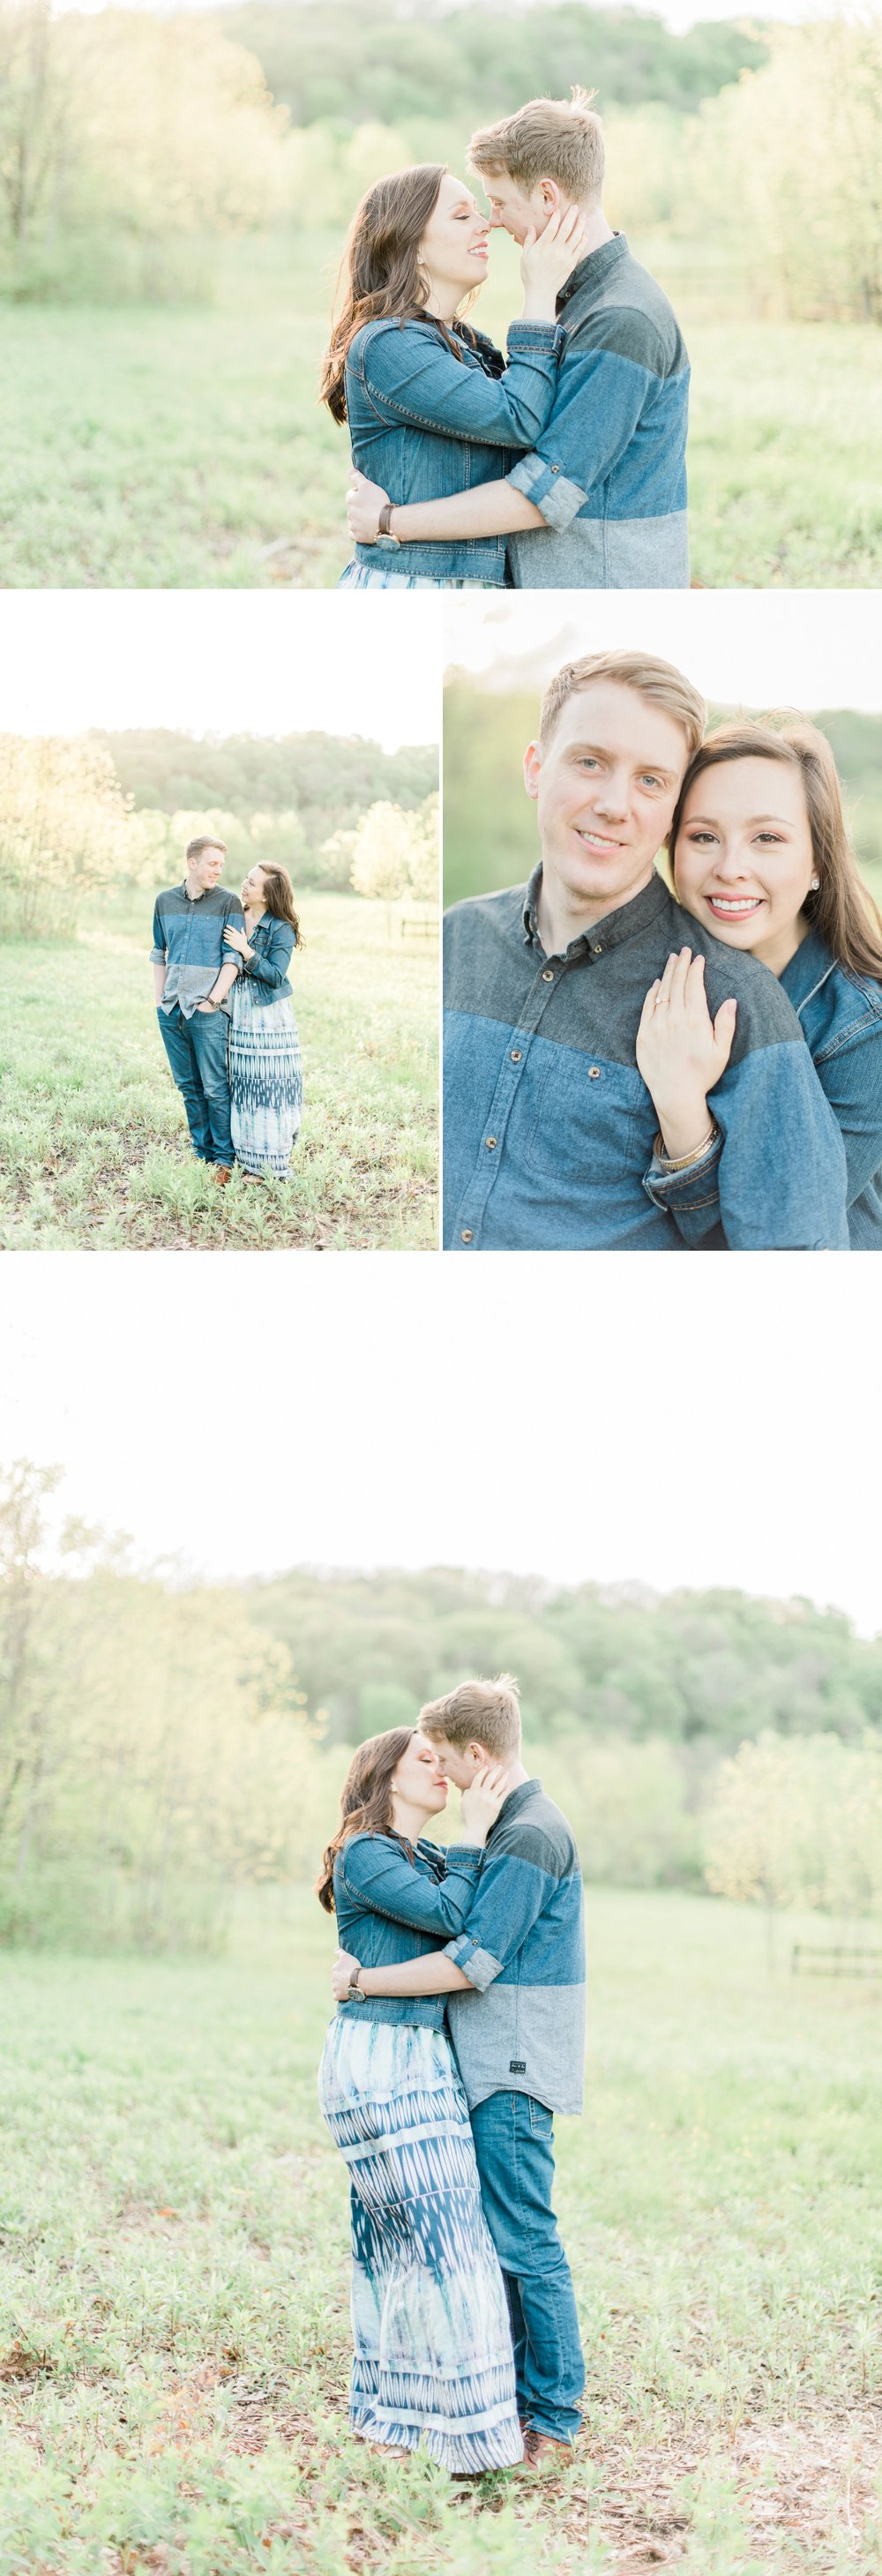 chestnut-ridge-metro-park-engagement-carroll-ohio-37.jpg